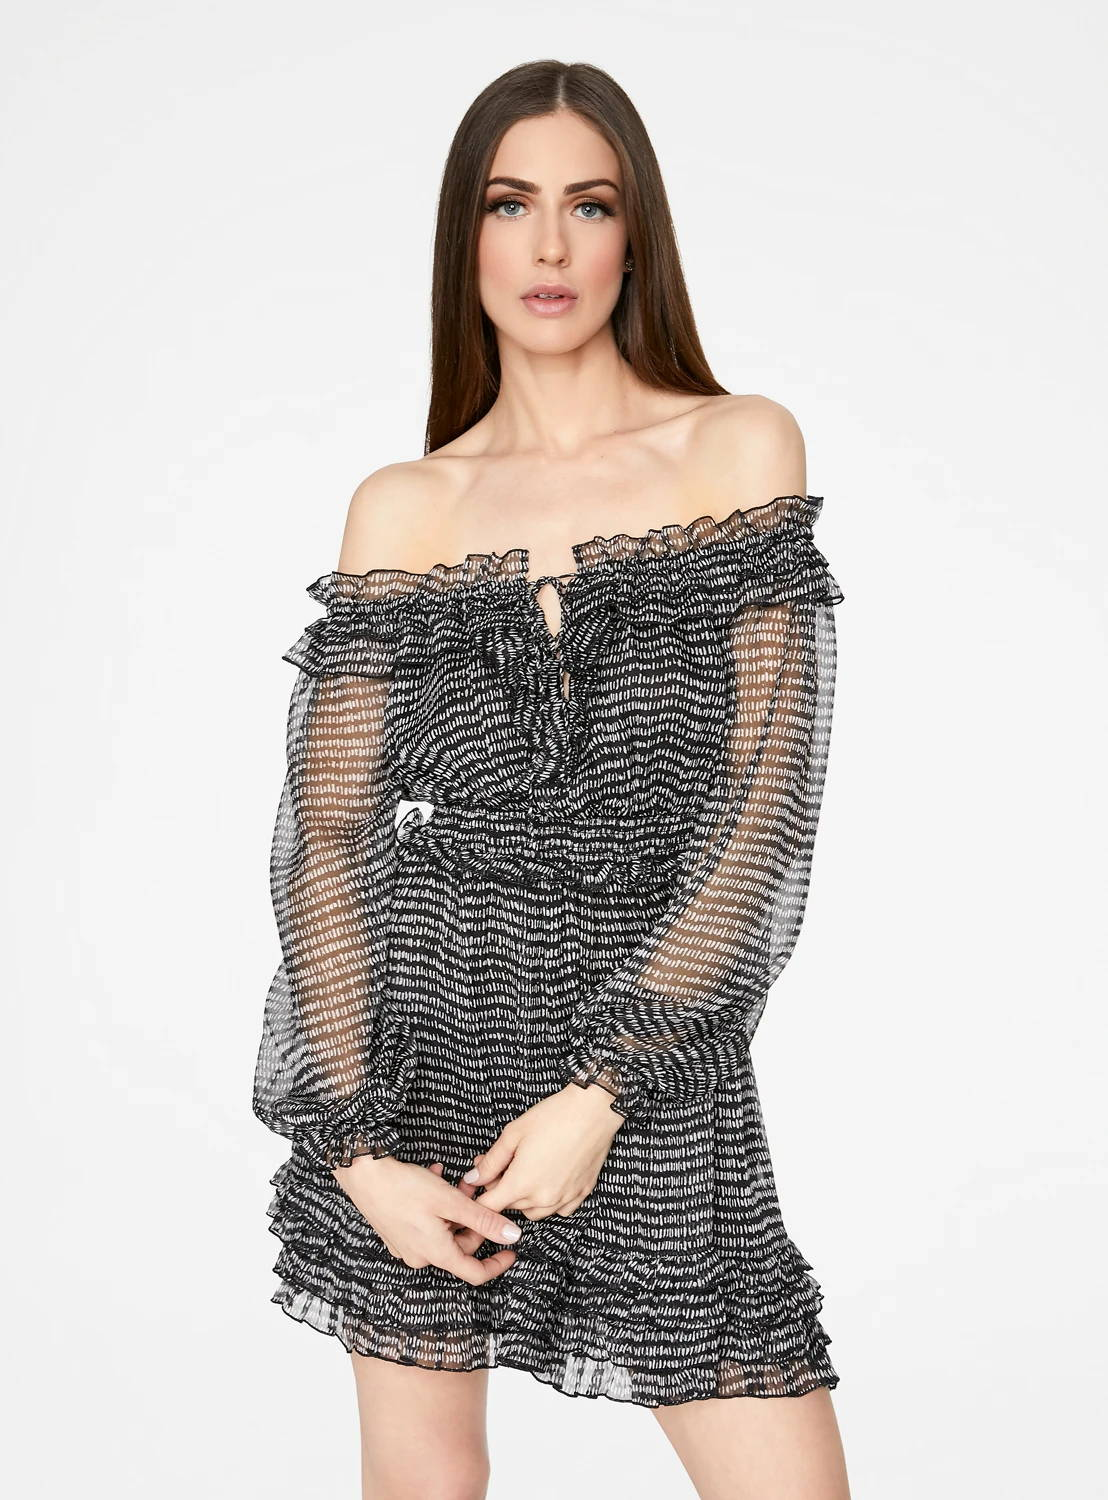 Black and White Long Sleeve Off the Shoulder Ruffle Dress